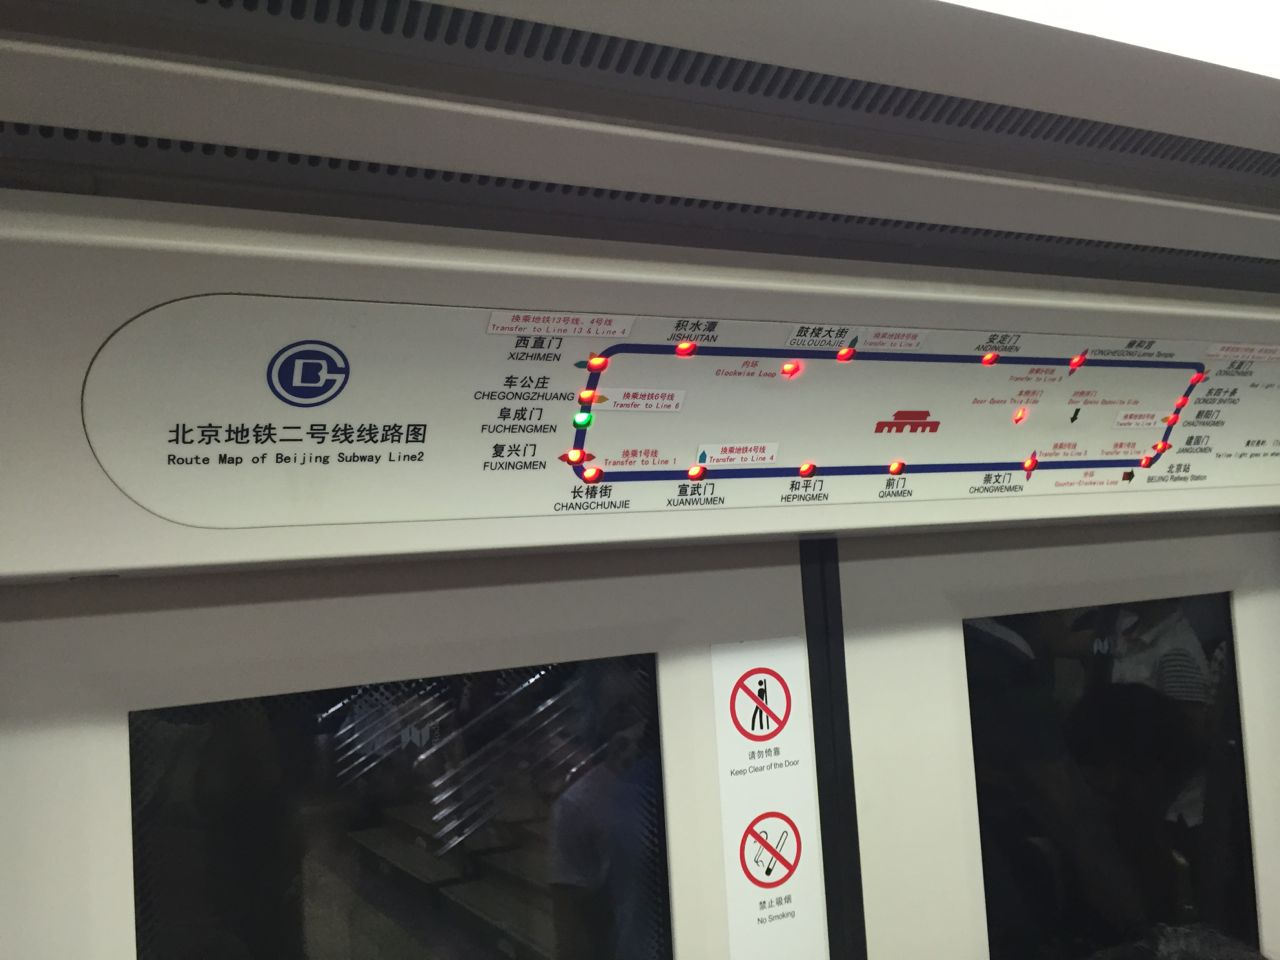 Beijing subway route map